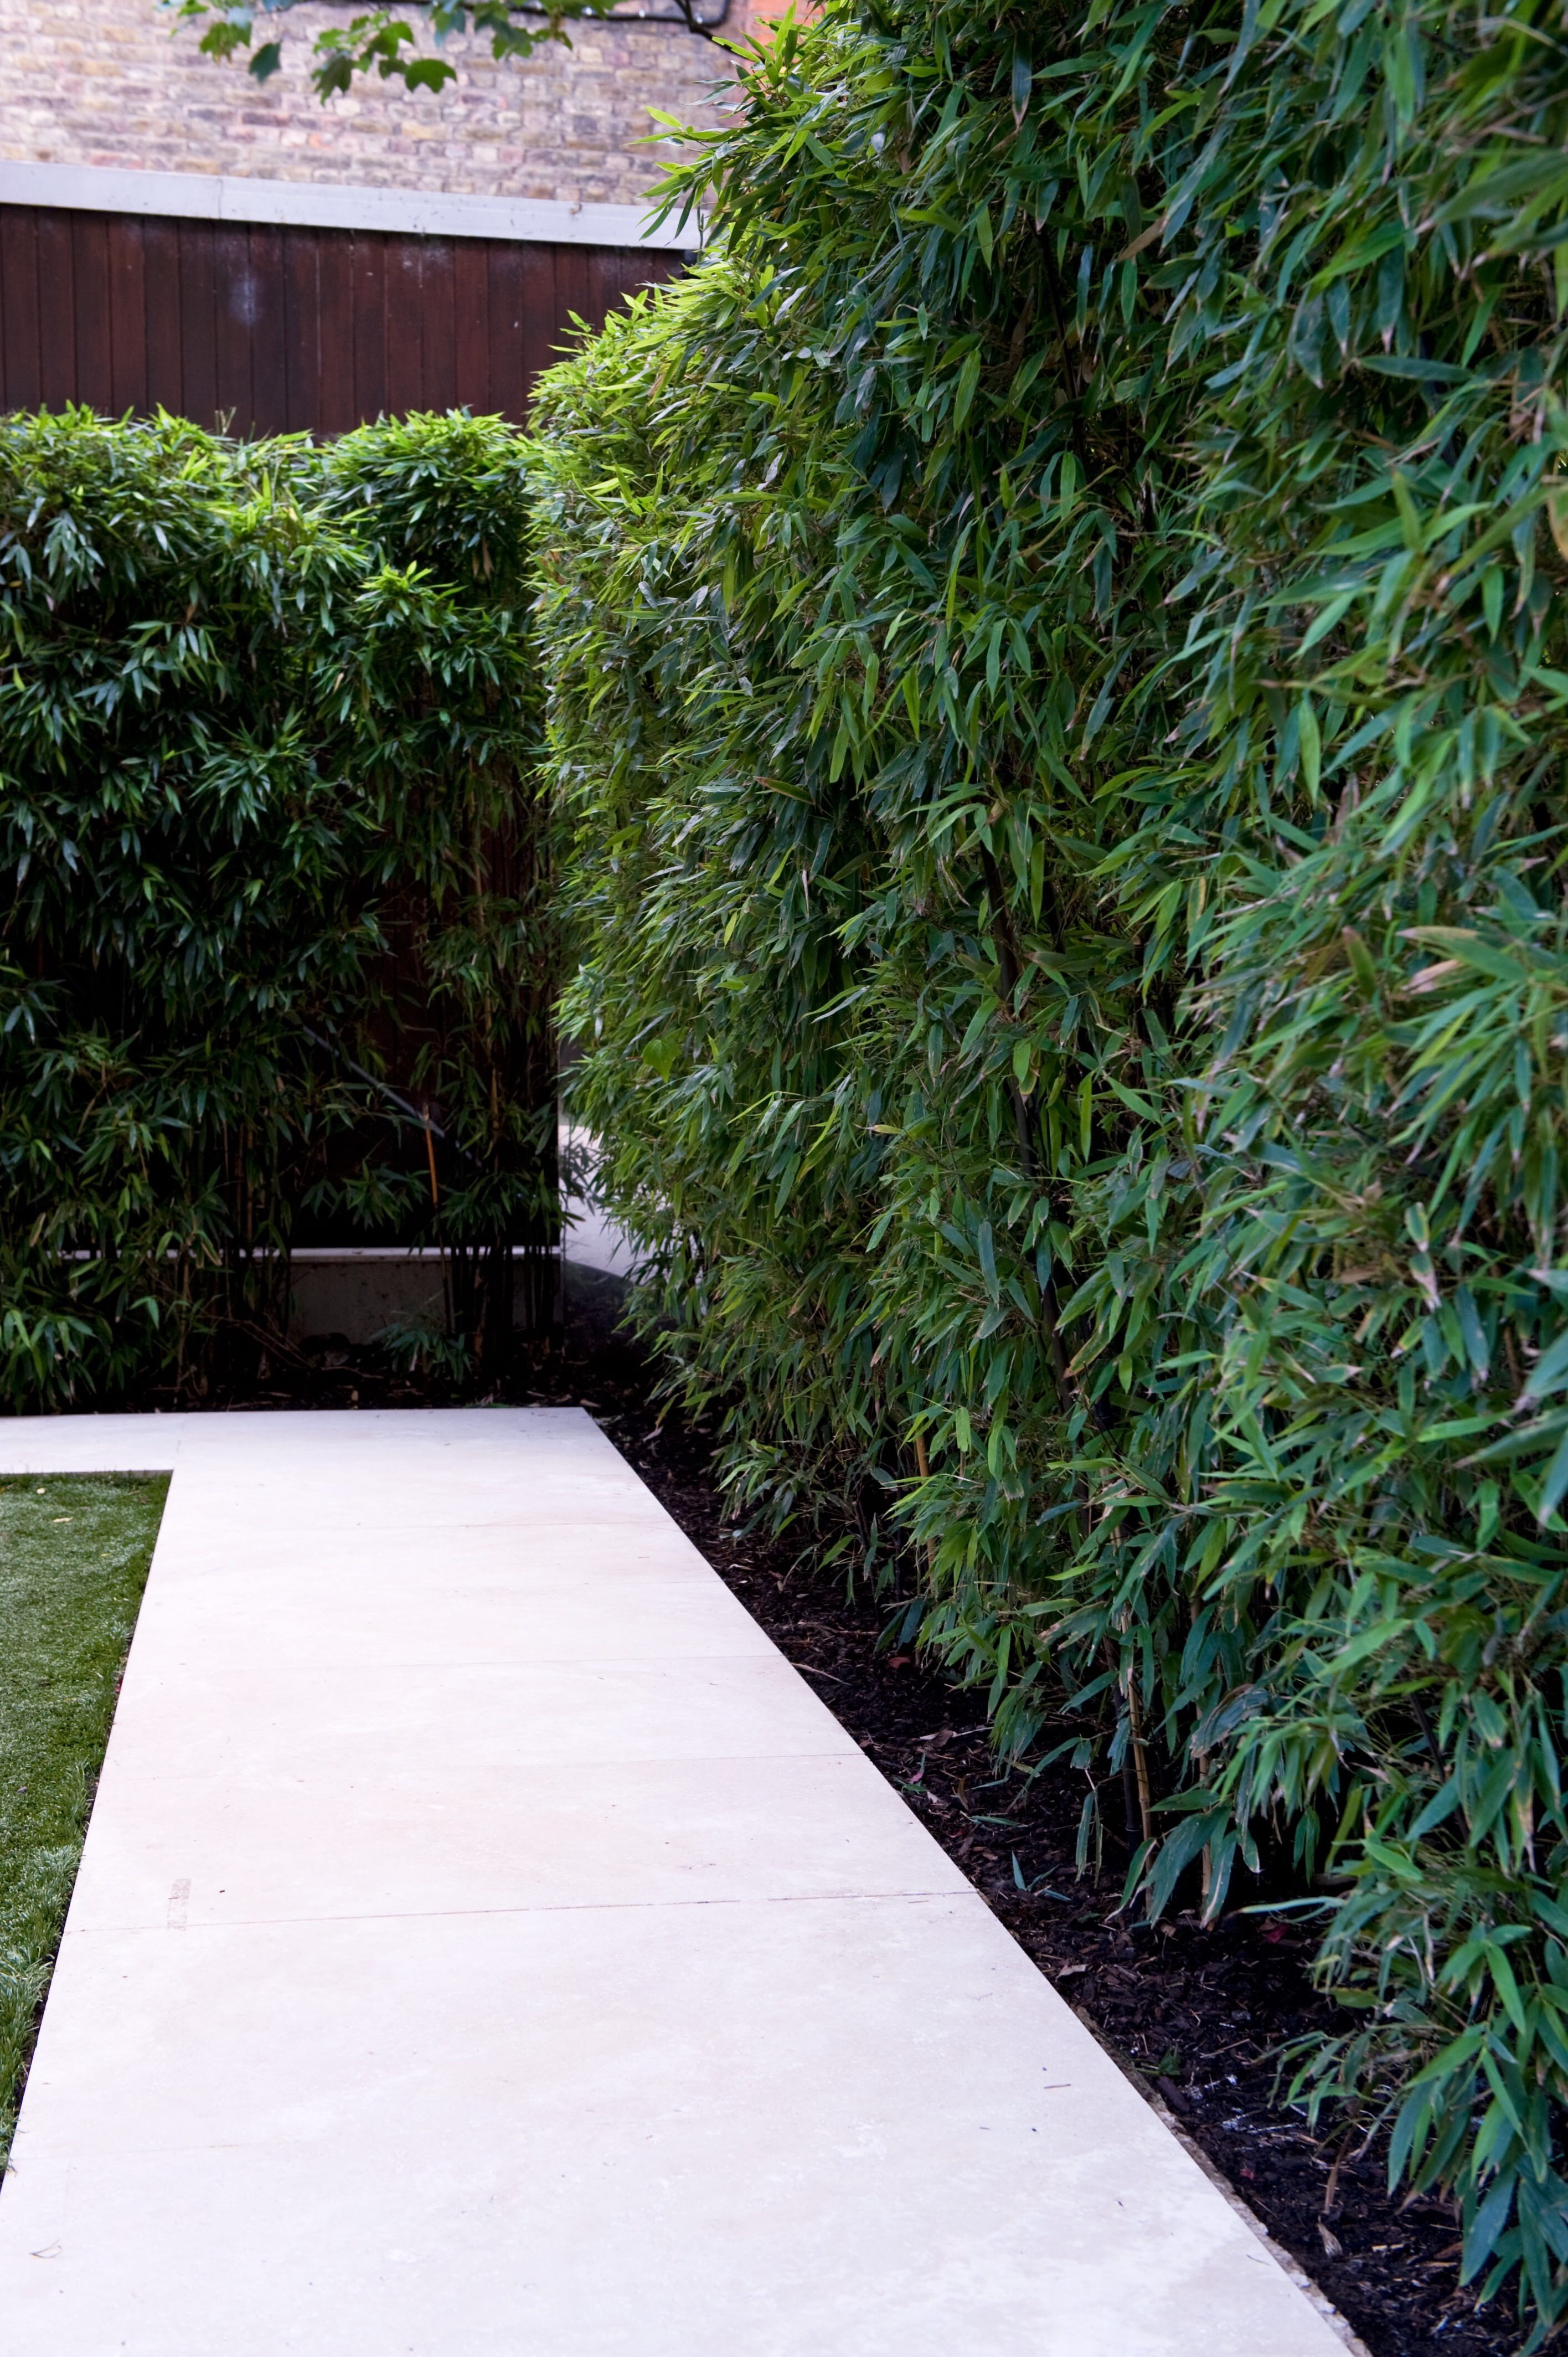 Hedges can give privacy - private garden design